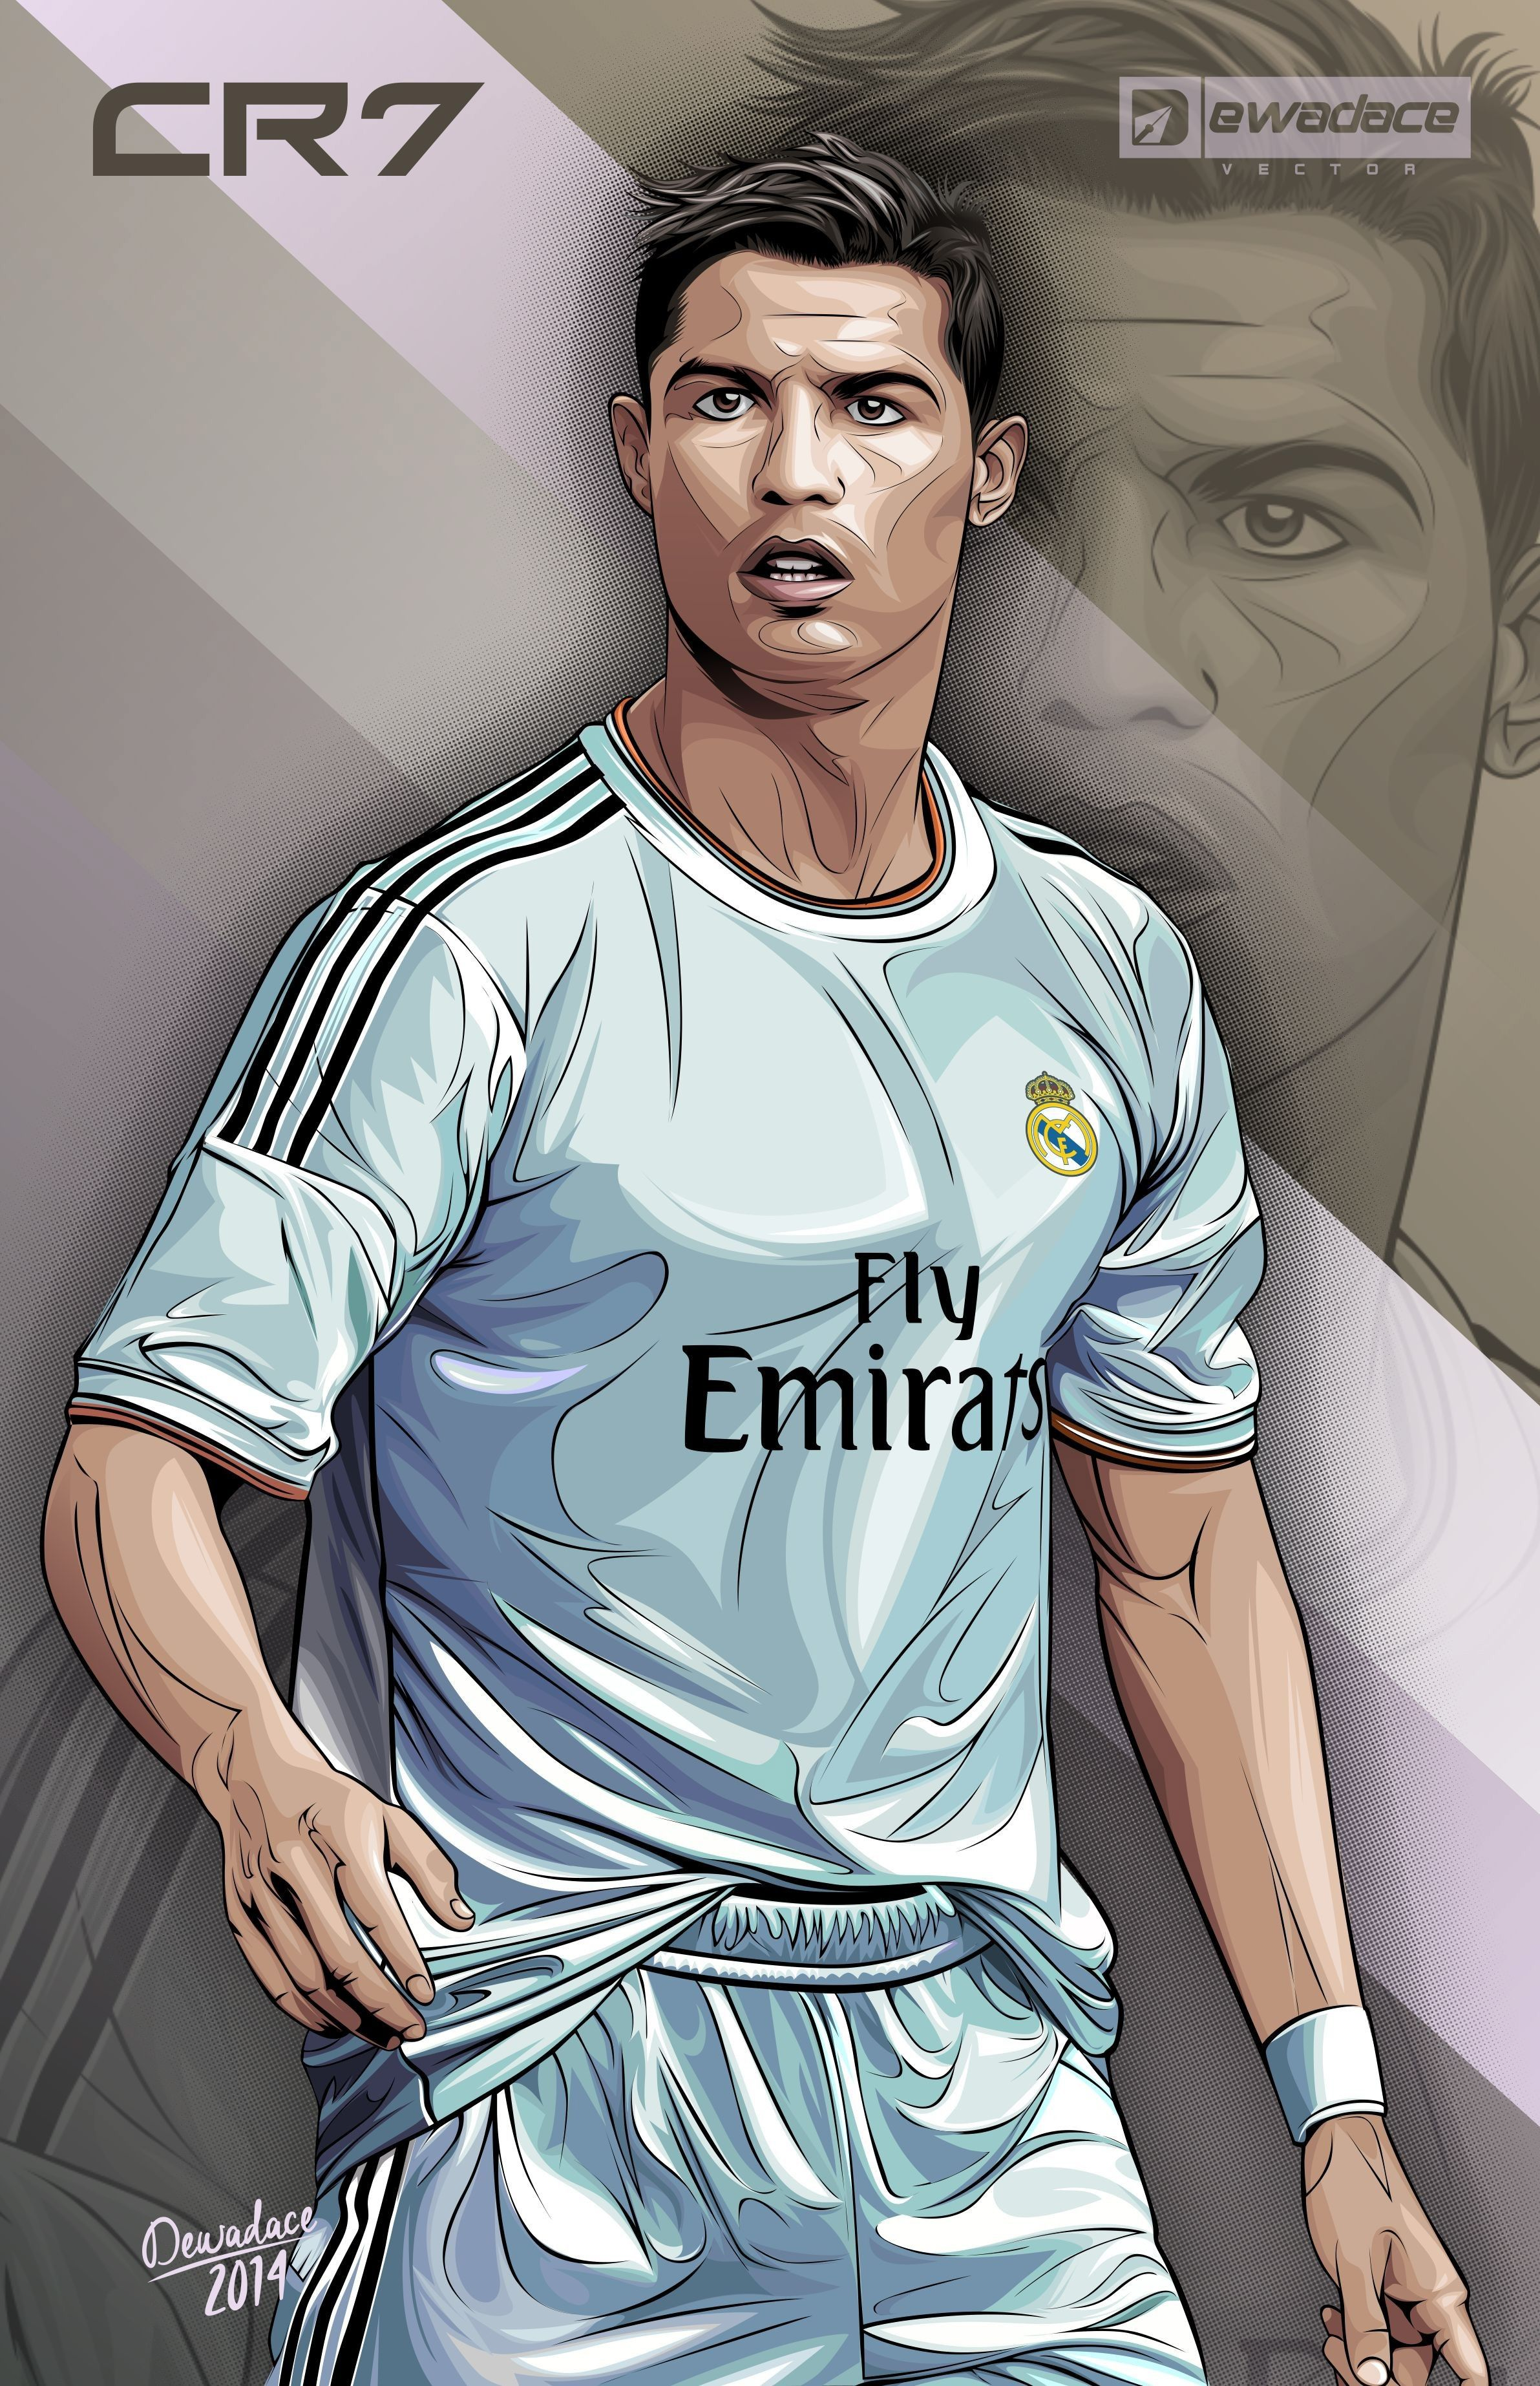 You need vector  dewadace gmail.com Futebol Arte 932fe0a8a51c4